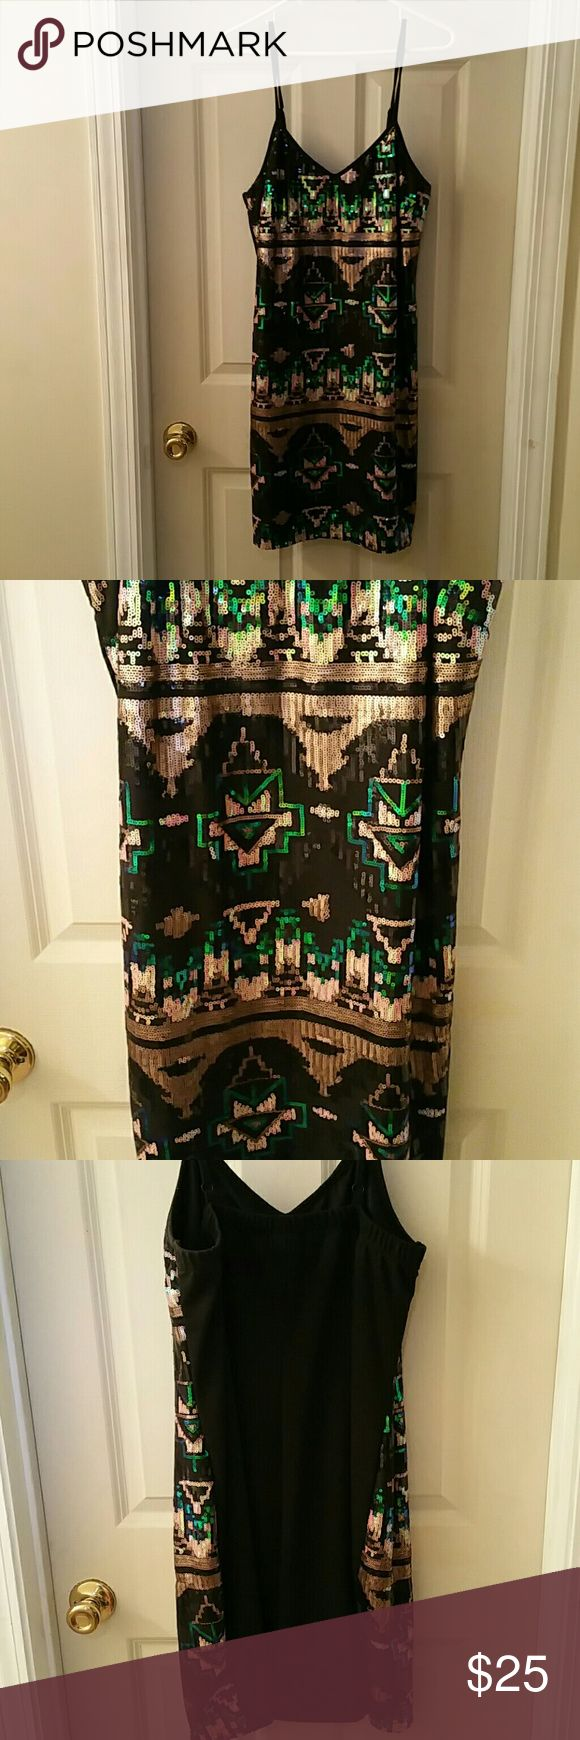 Torrid party dress Cocktail dress. Aztec design on front & plain black on back. Worn once. torrid Dresses Mini